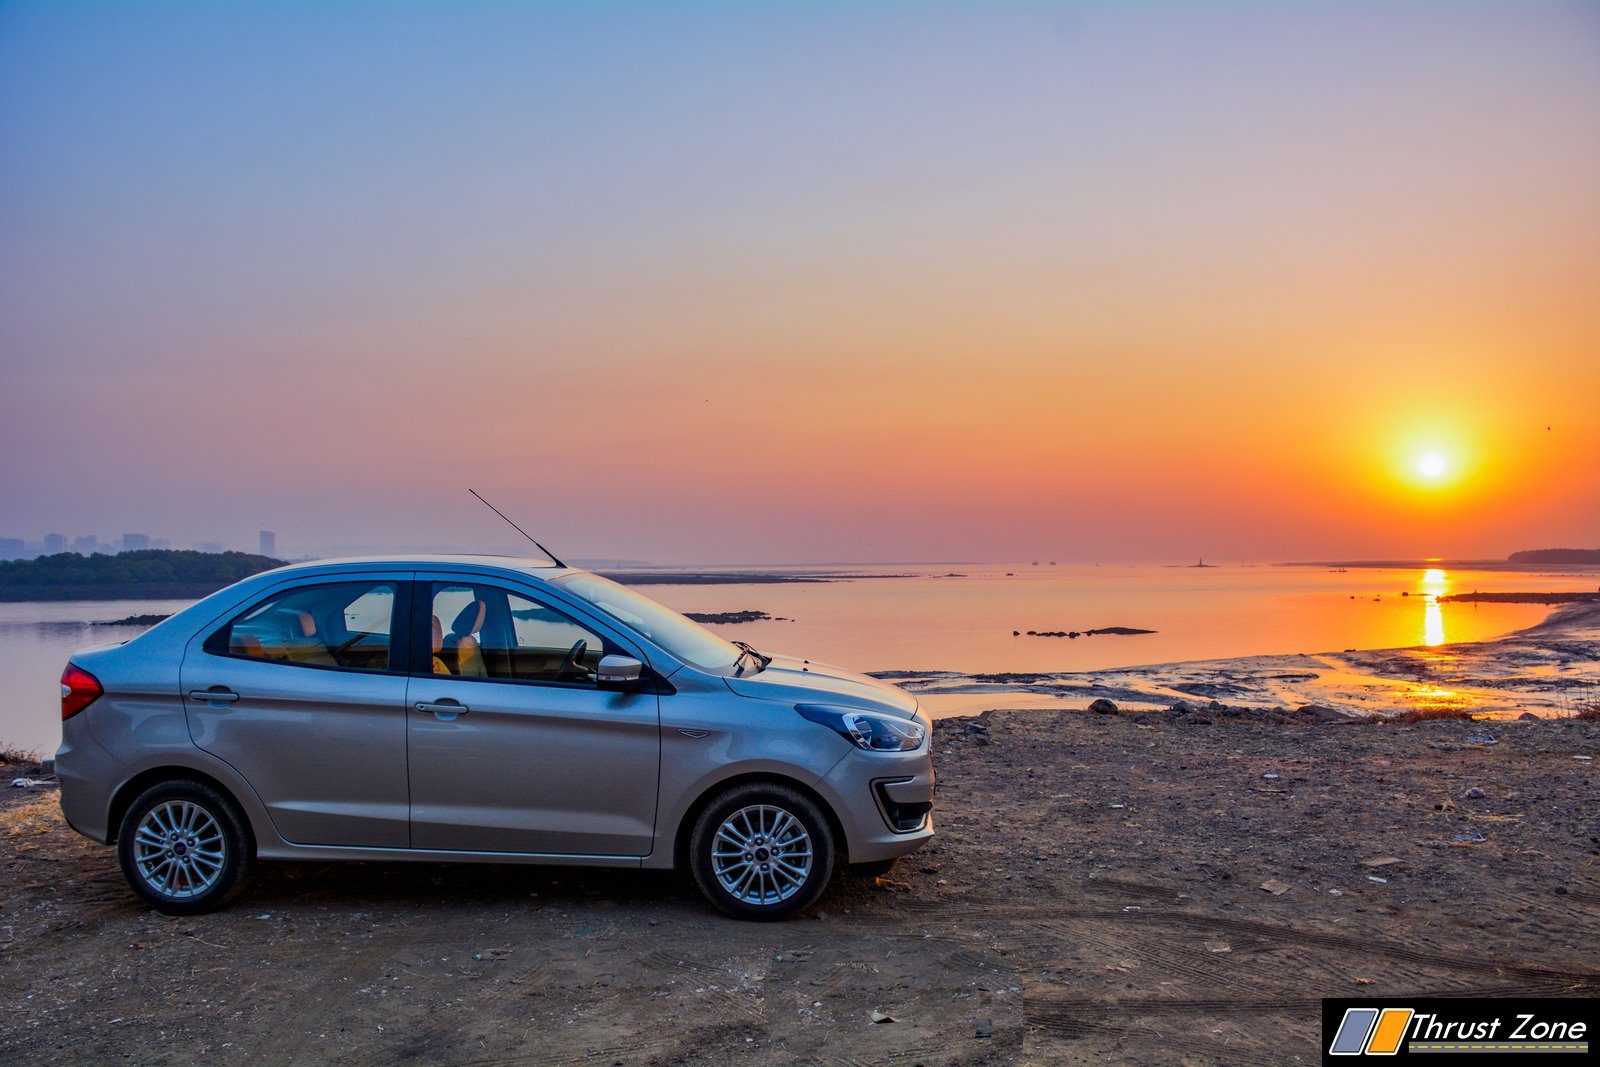 2018-Ford-Aspire-Diesel-Review-Road-Test-7-7